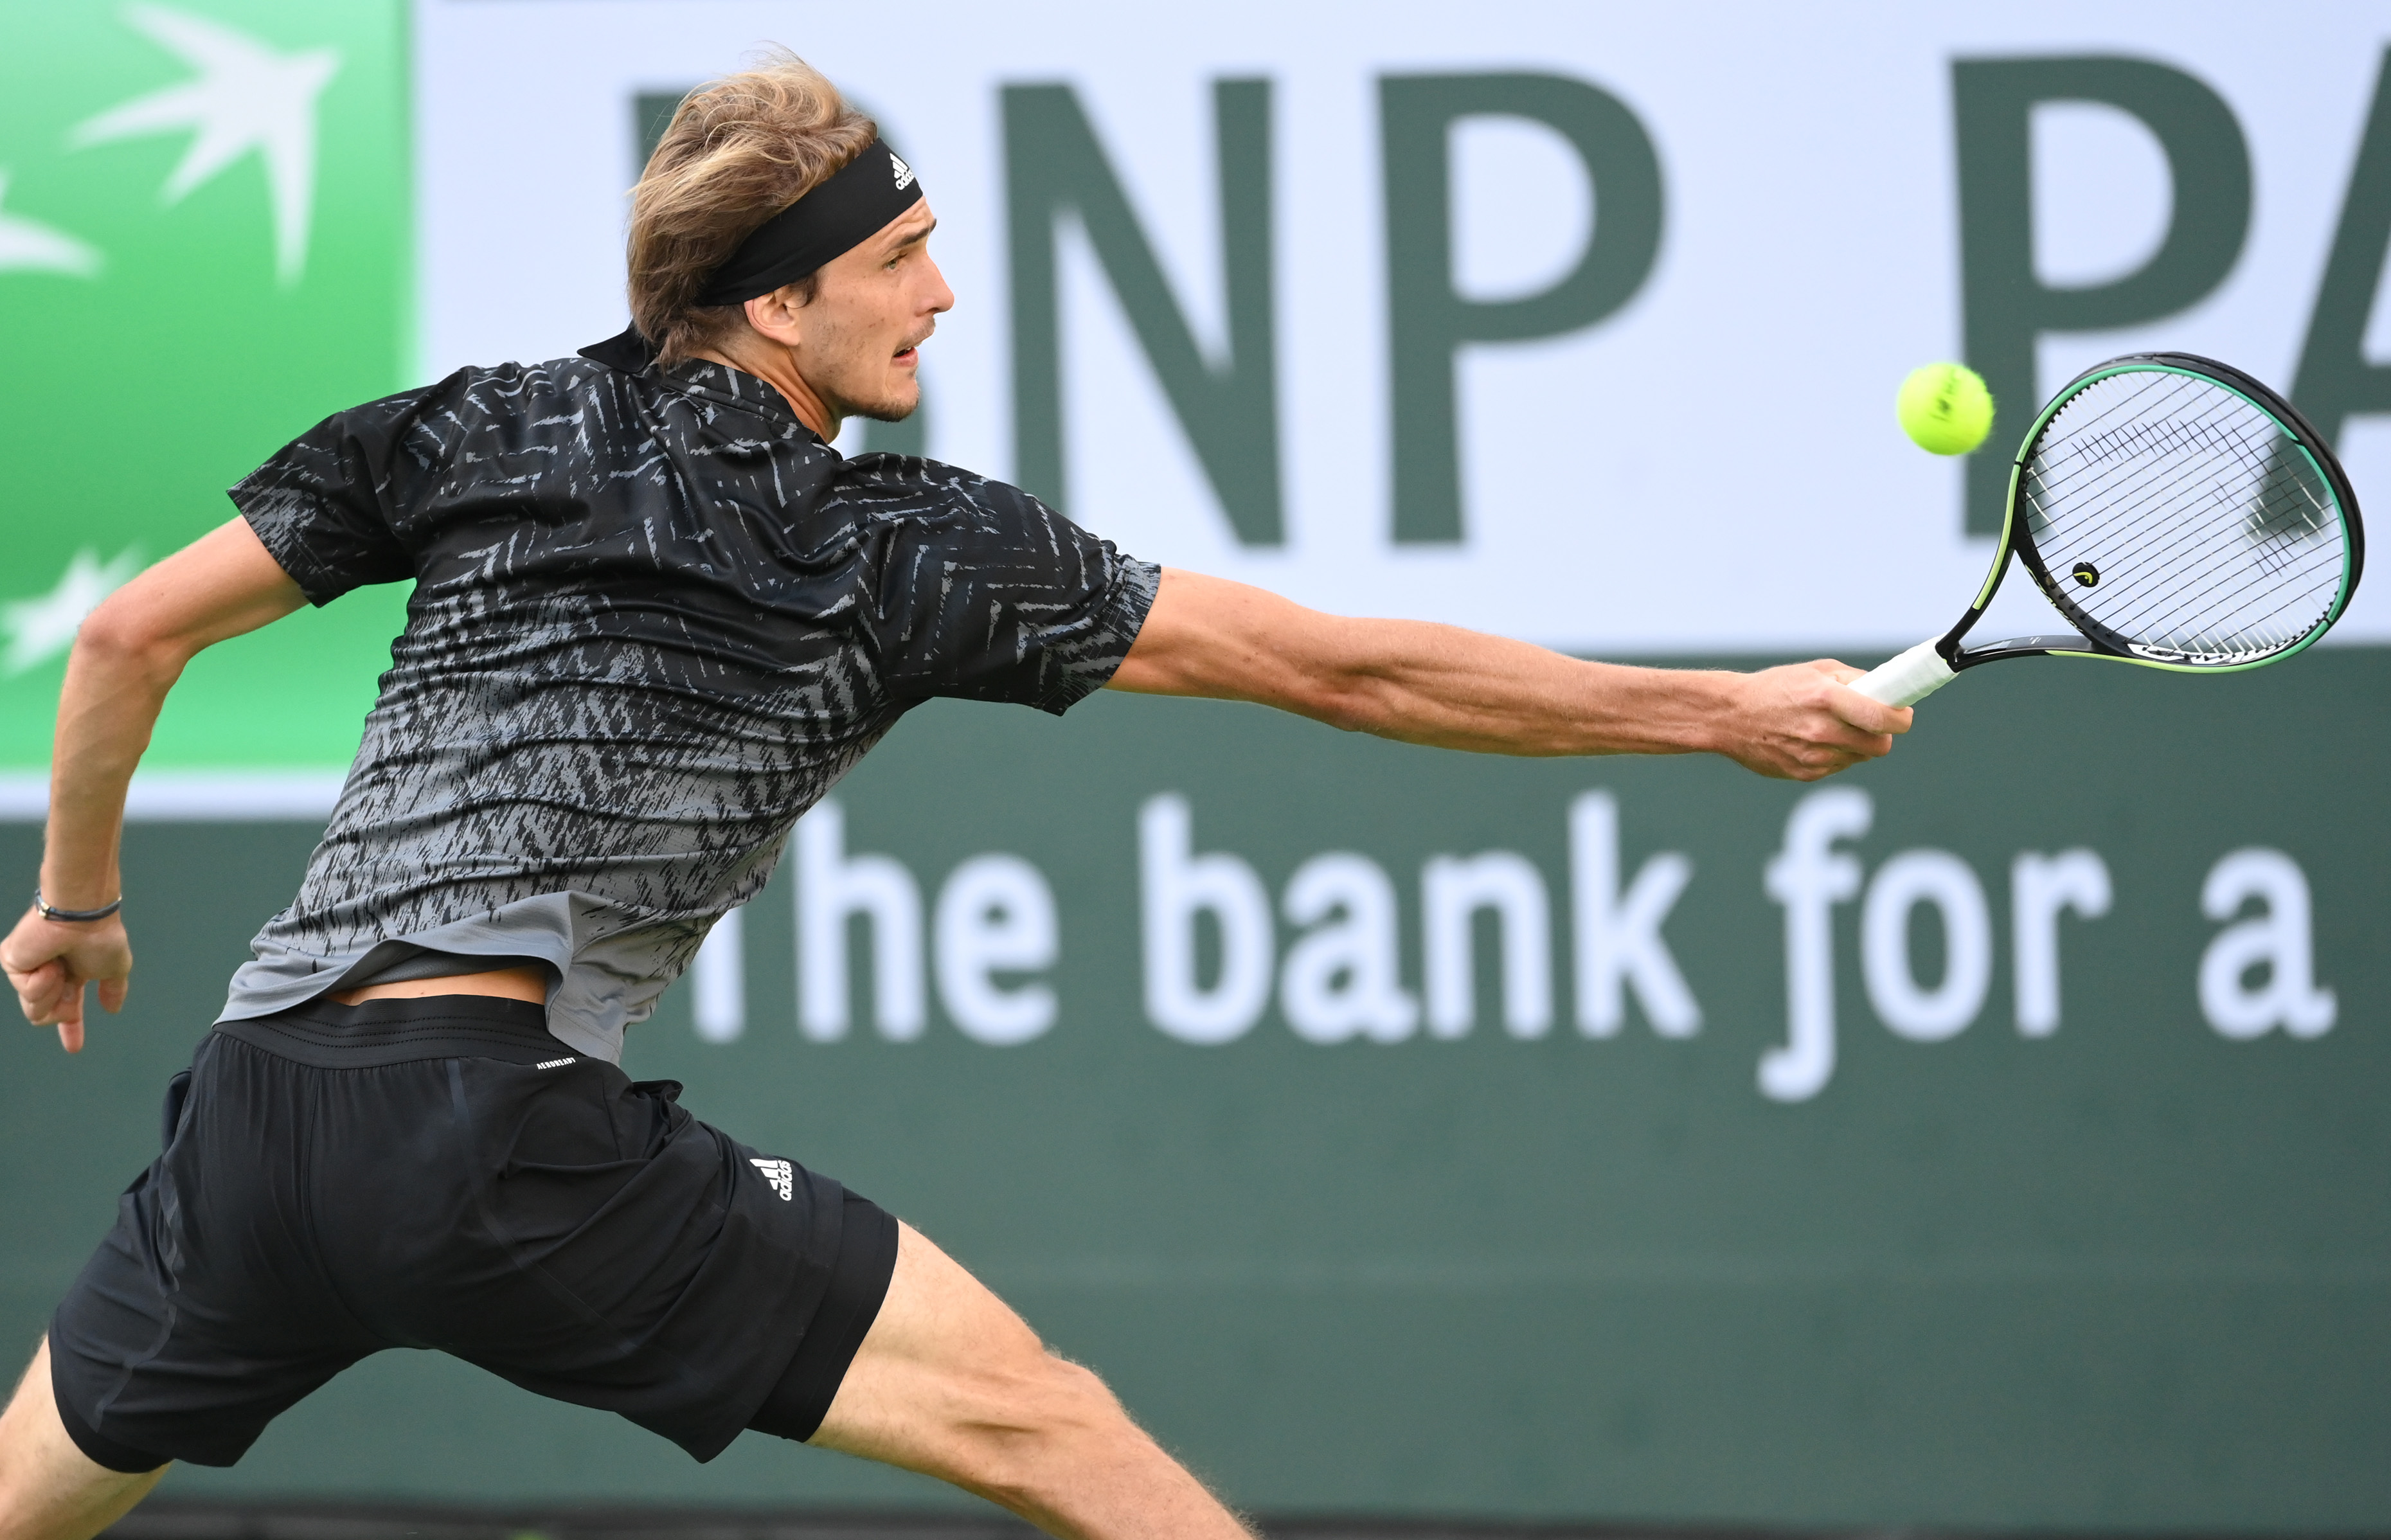 Oct 12, 2021; Indian Wells, CA, USA;  Alexander Zverev (GER) hits a shot against Andy Murray (GBR) during a third round match against in the BNP Paribas Open at the Indian Wells Tennis Garden. Mandatory Credit: Jayne Kamin-Oncea-USA TODAY Sports